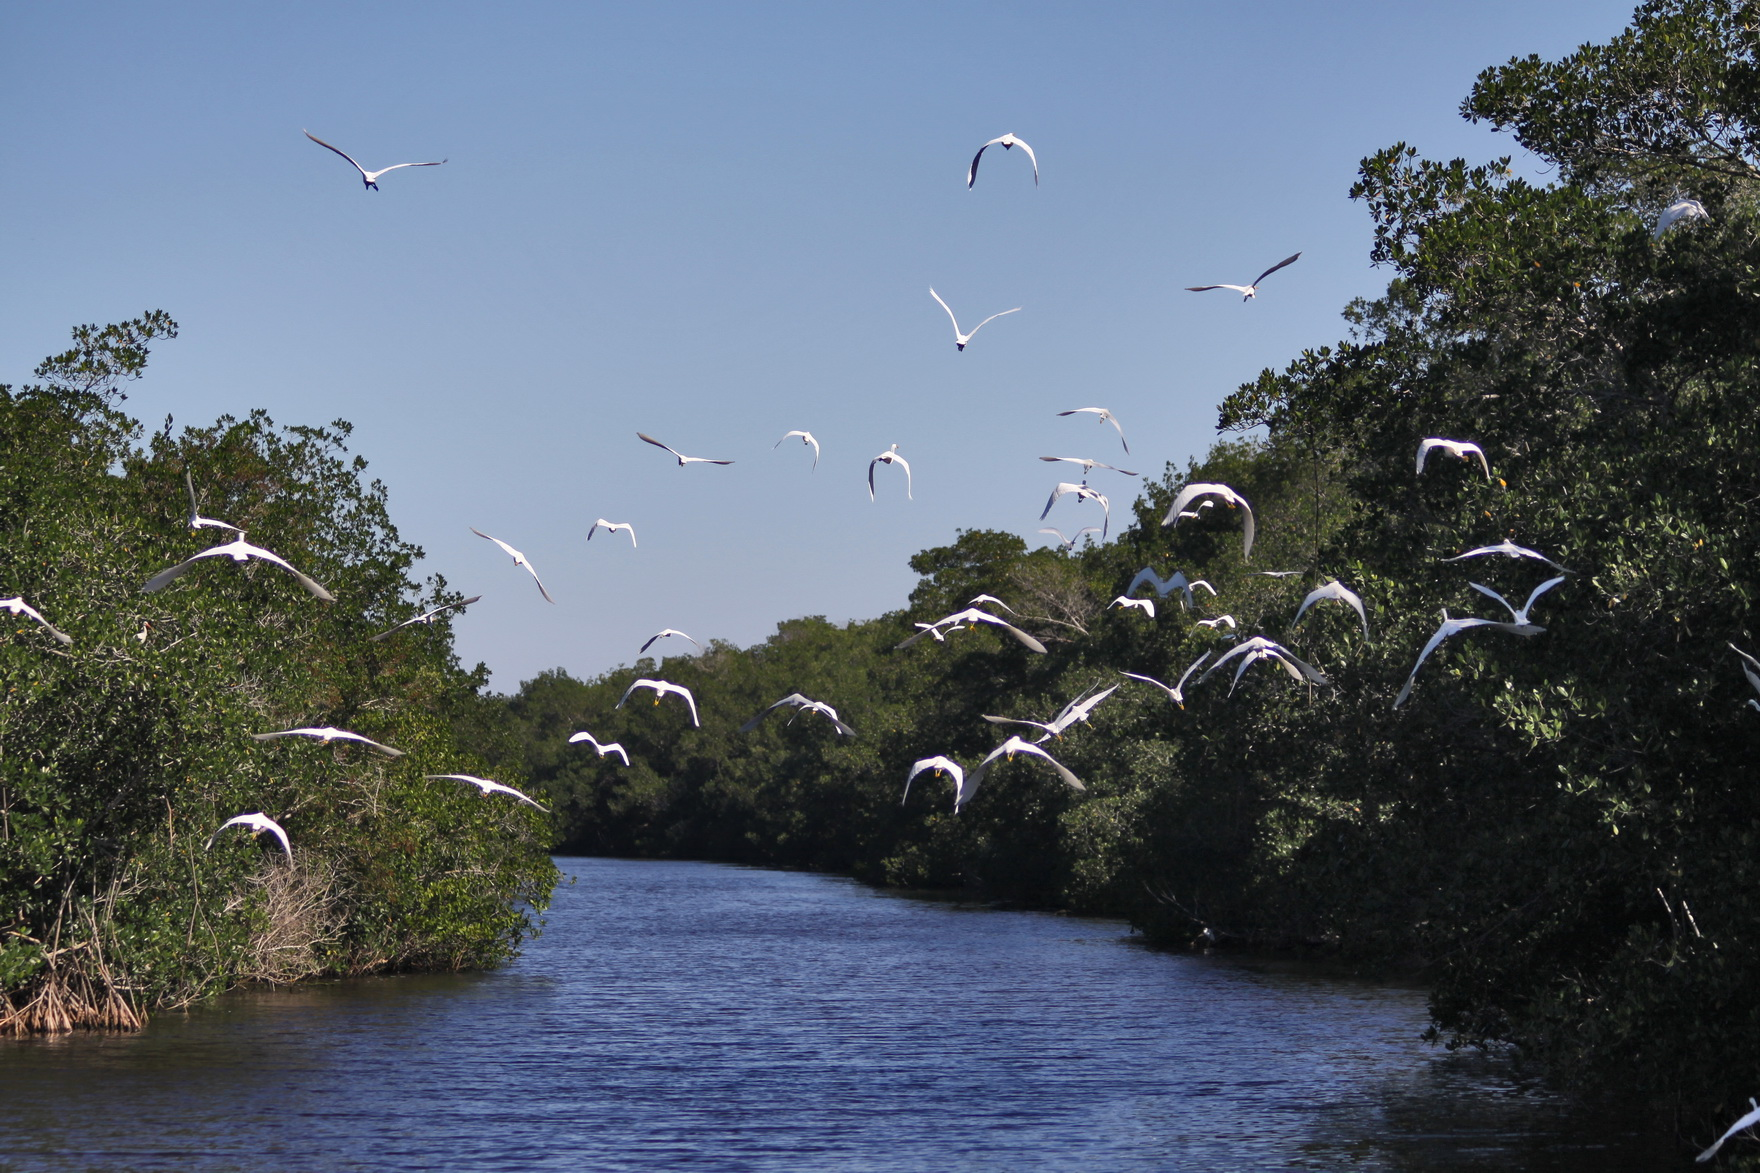 parks of the central region of florida